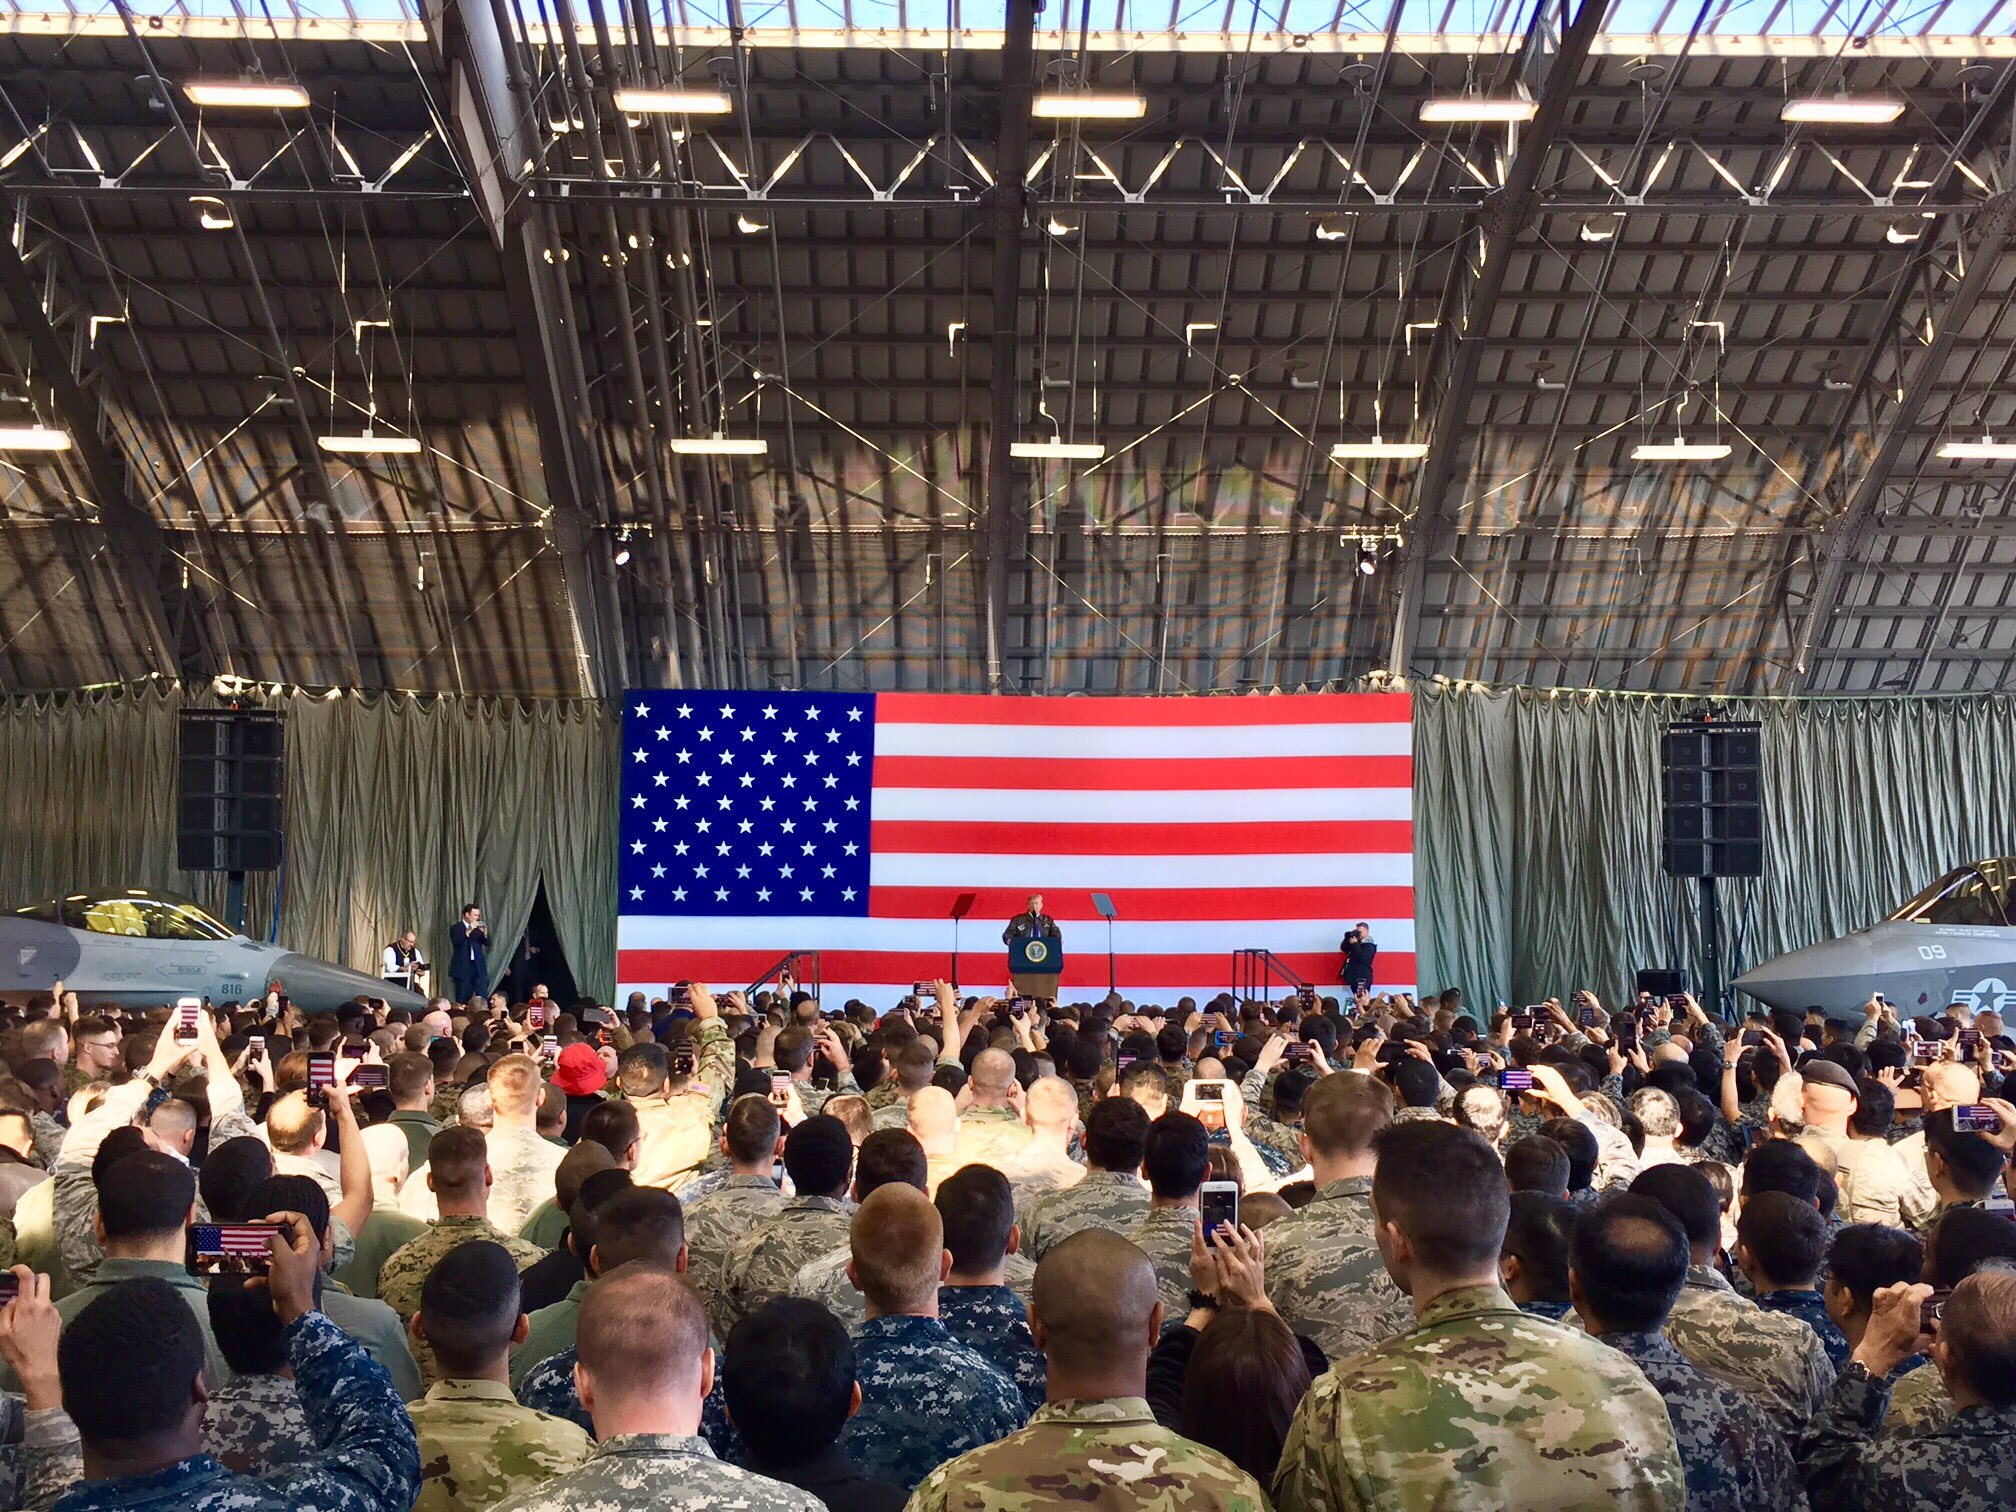 .@POTUS speaks to our brave men and women at Yokota Air Base - thank you for your selfless service! #POTUSInAsia https://t.co/dPPD2pSeYW